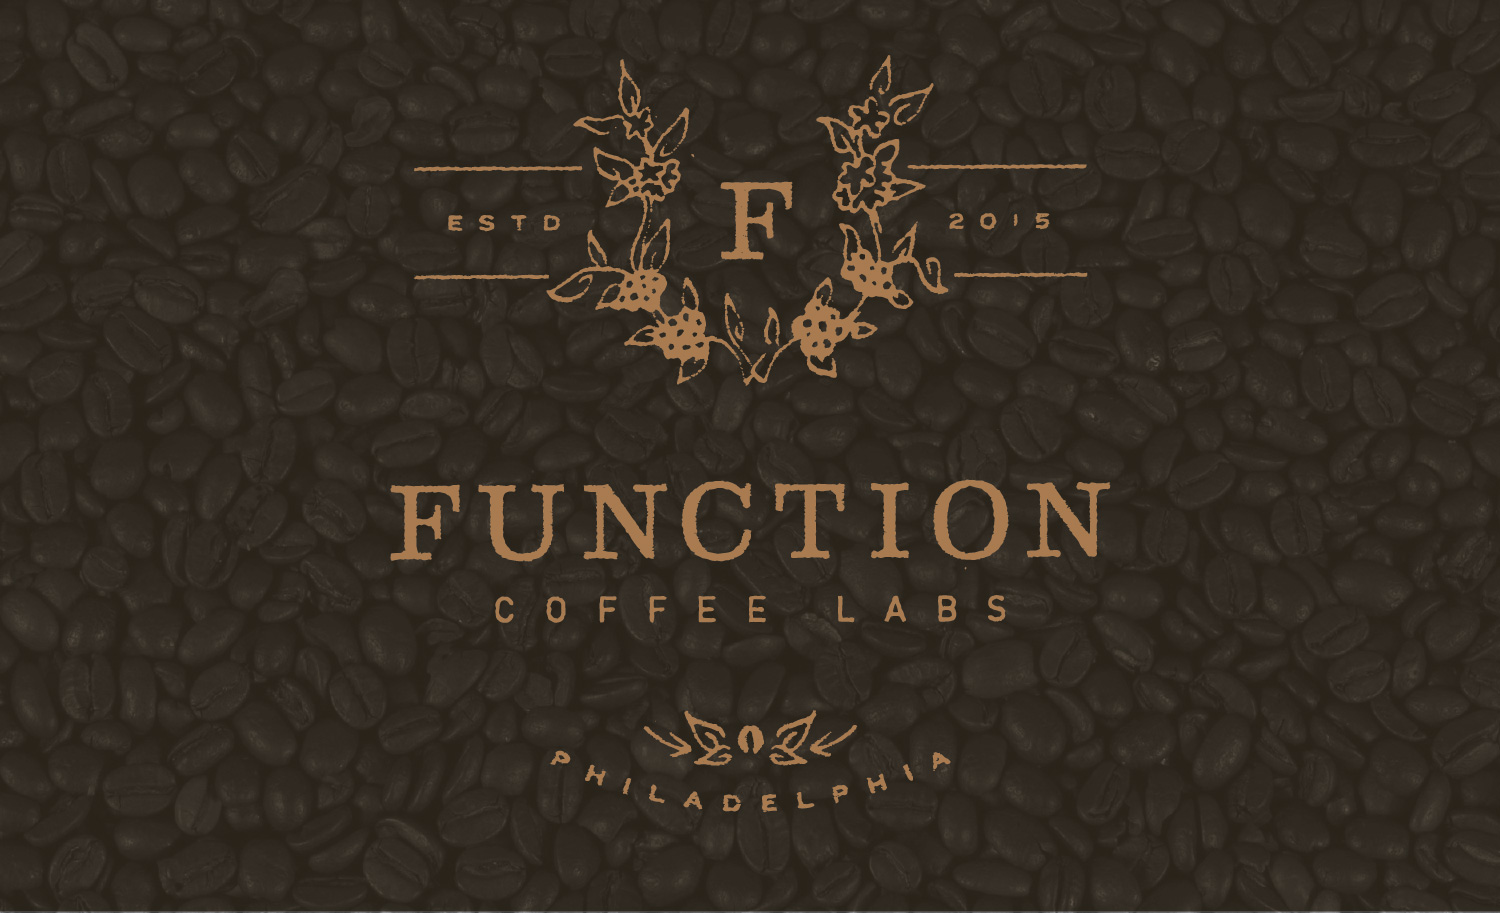 Function Coffee Labs - Logo & brand design by Melissa Yeager